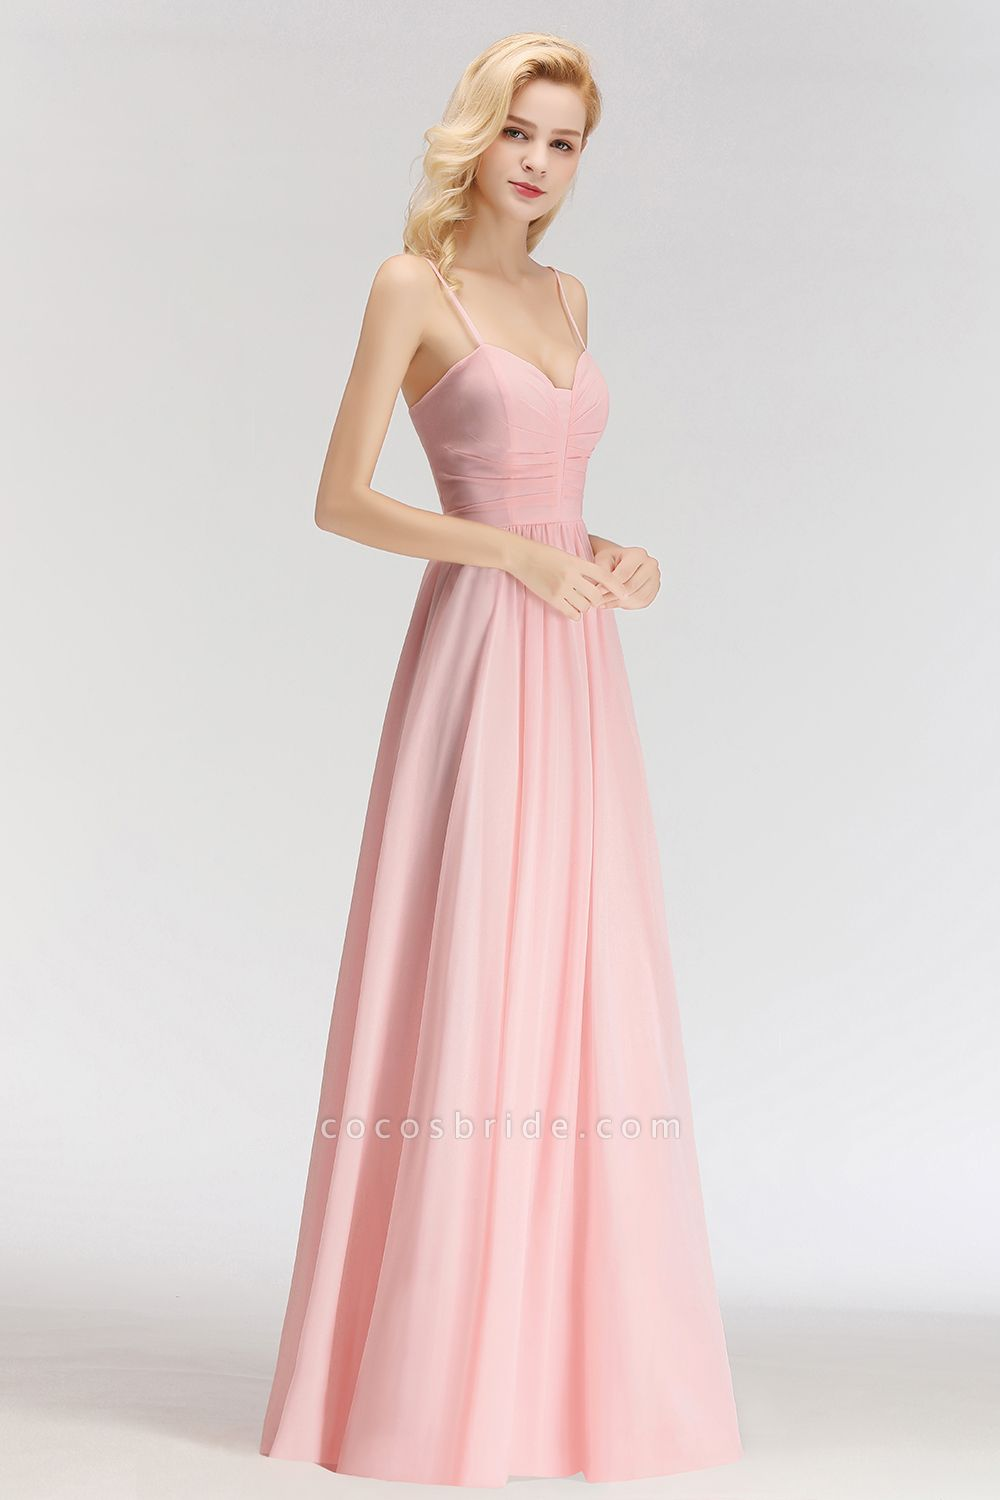 Spaghetti Straps A-line Long Sweetheart Sleeveless Bridesmaid Dresses